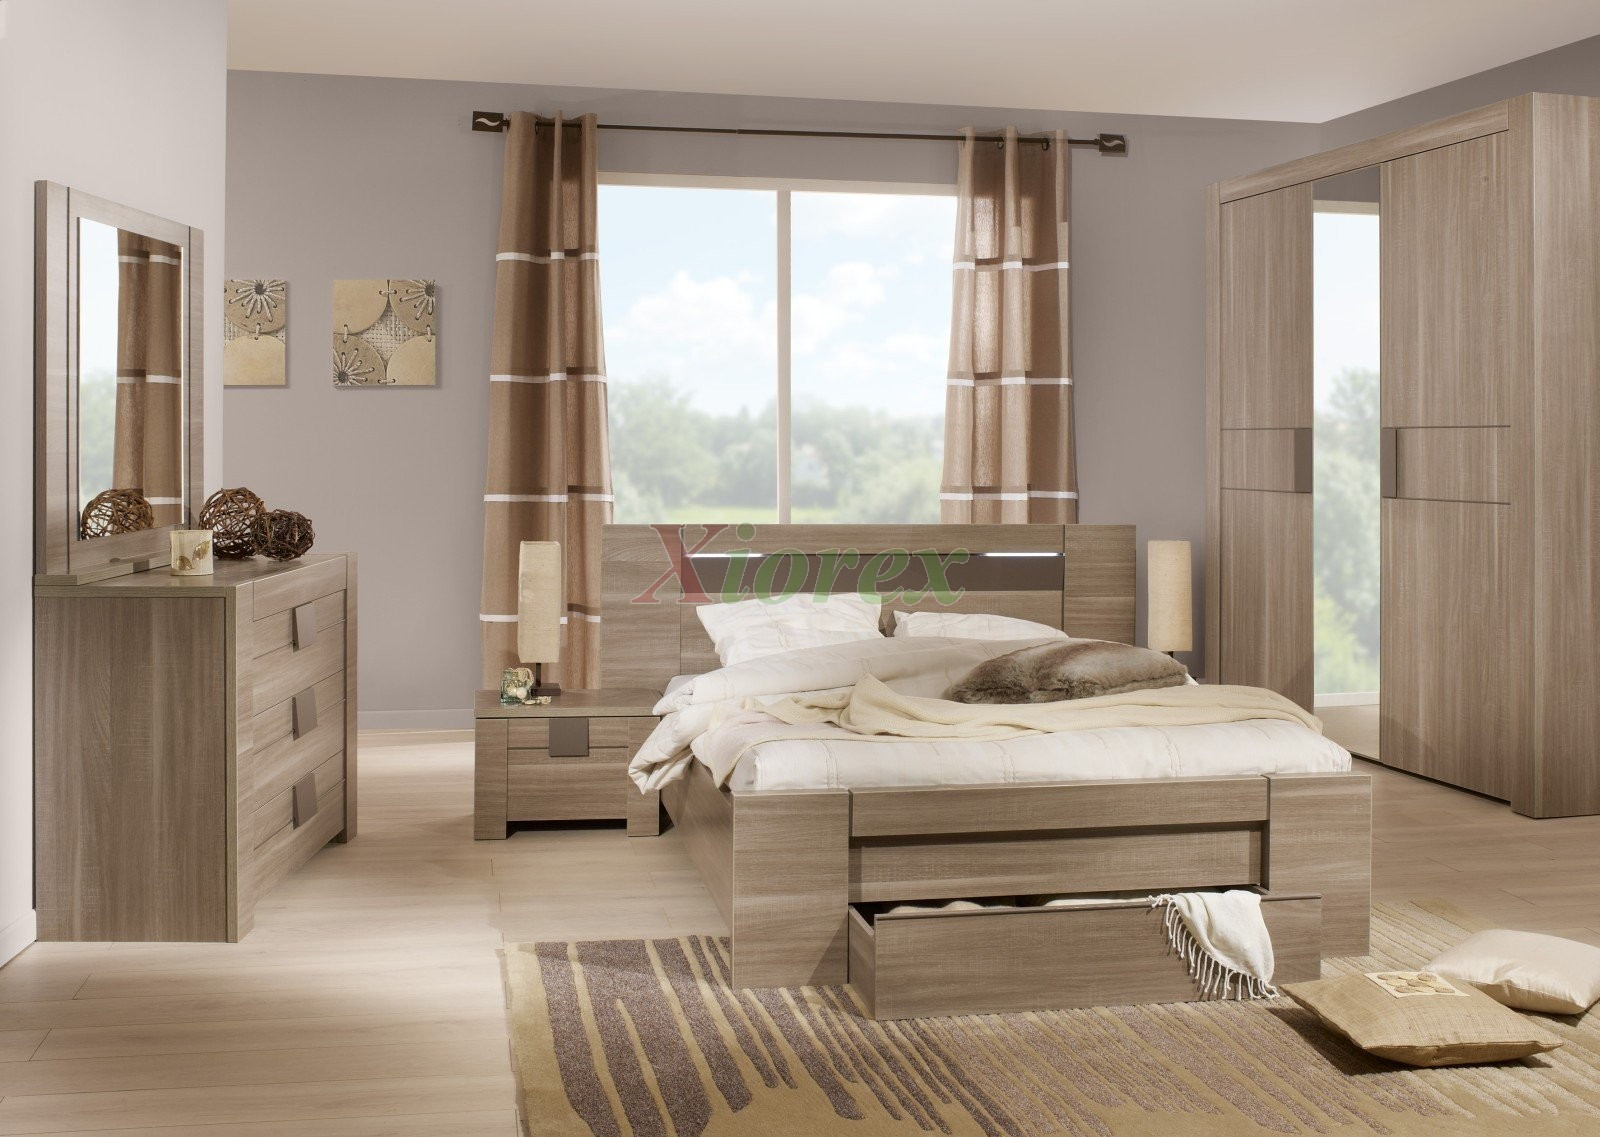 Best ideas about Master Bedroom Sets . Save or Pin Master Bedroom Moka Beds Gami Moka Master Bedroom Sets by Now.